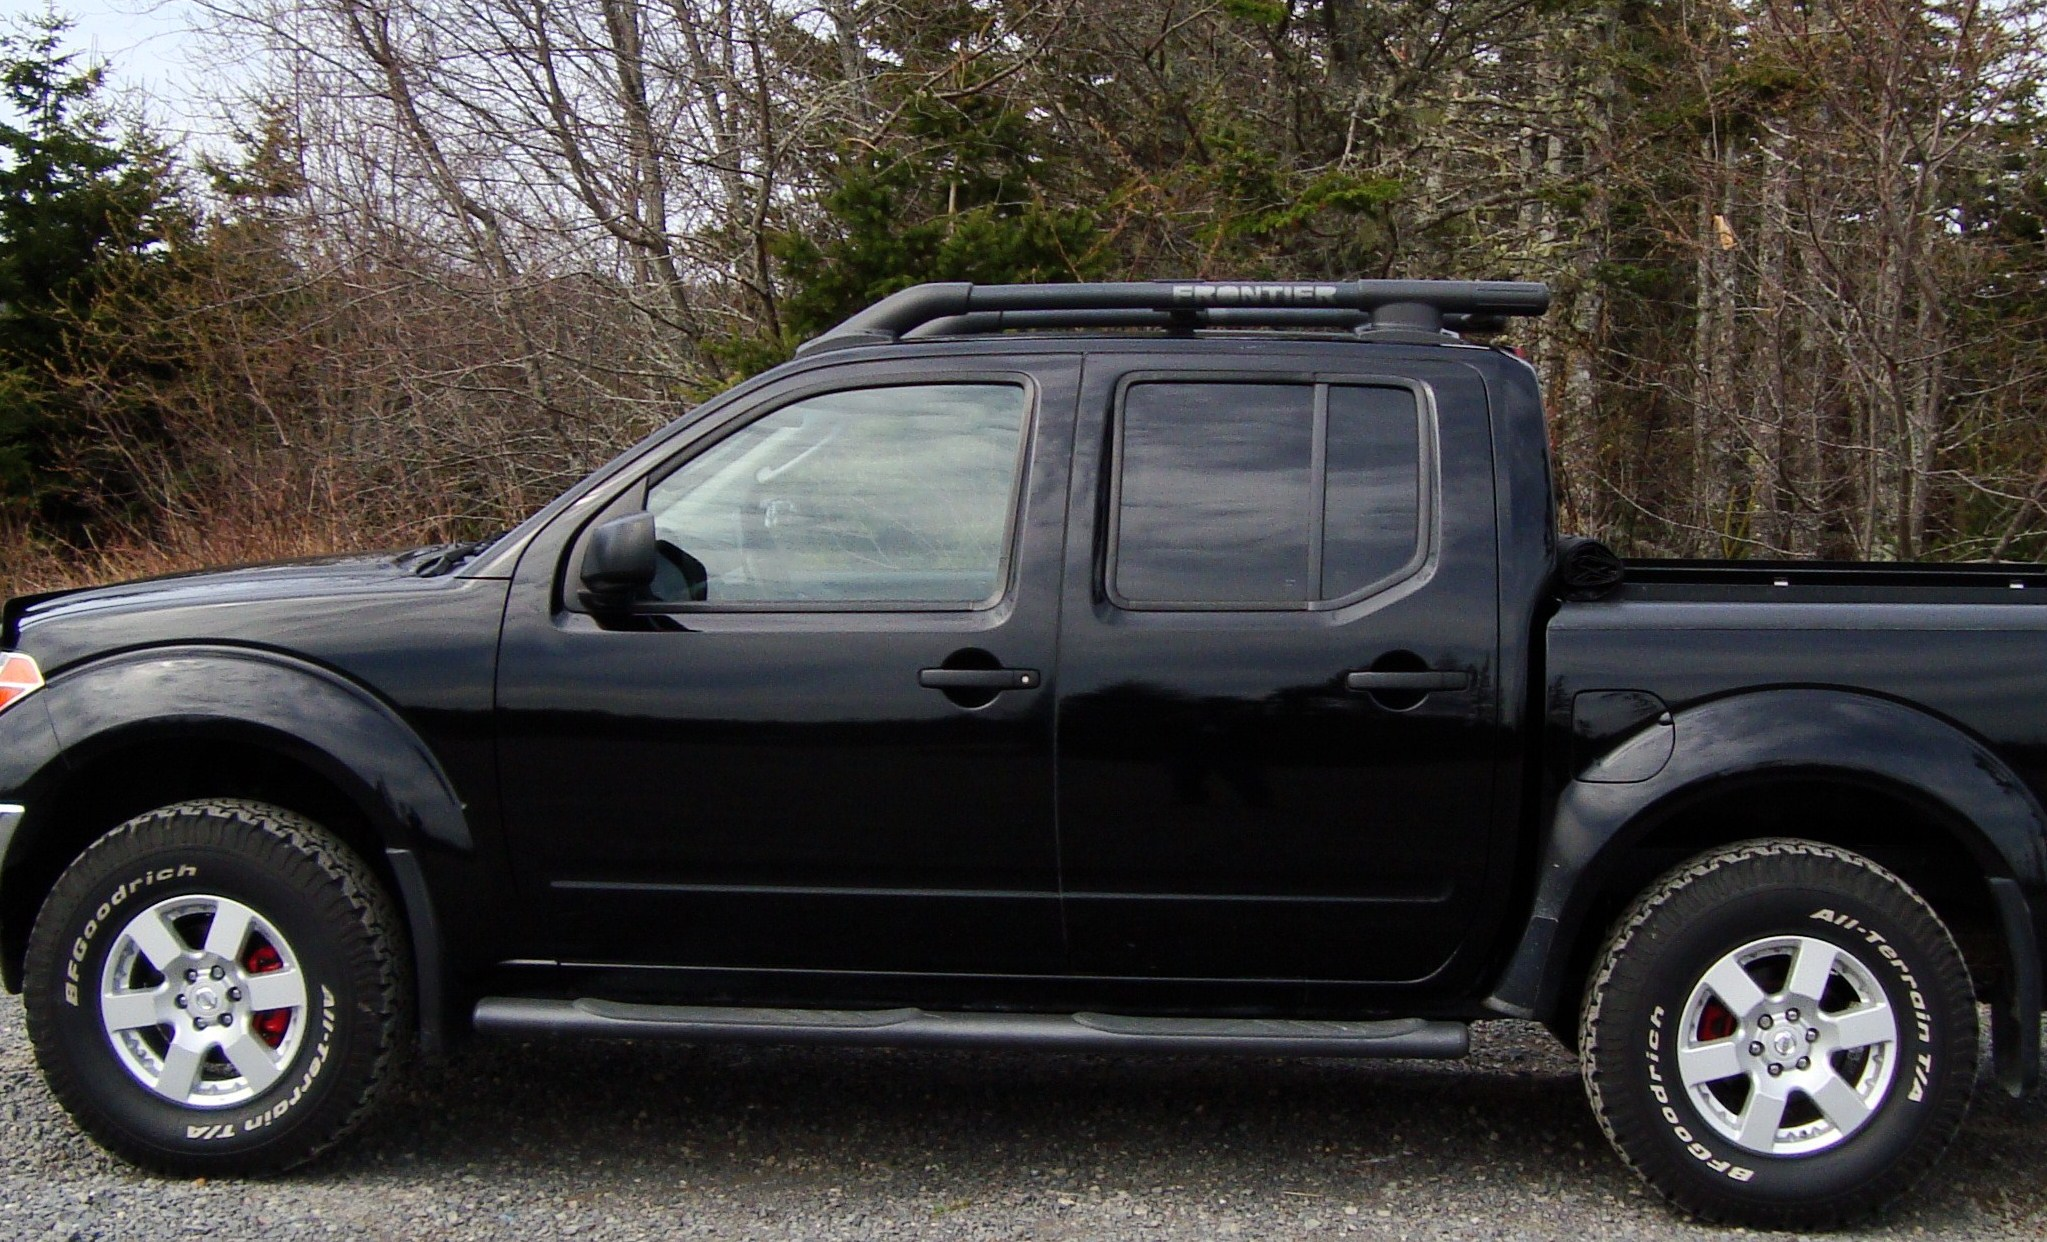 Ride heights before and after lifts - Nissan Frontier Forum